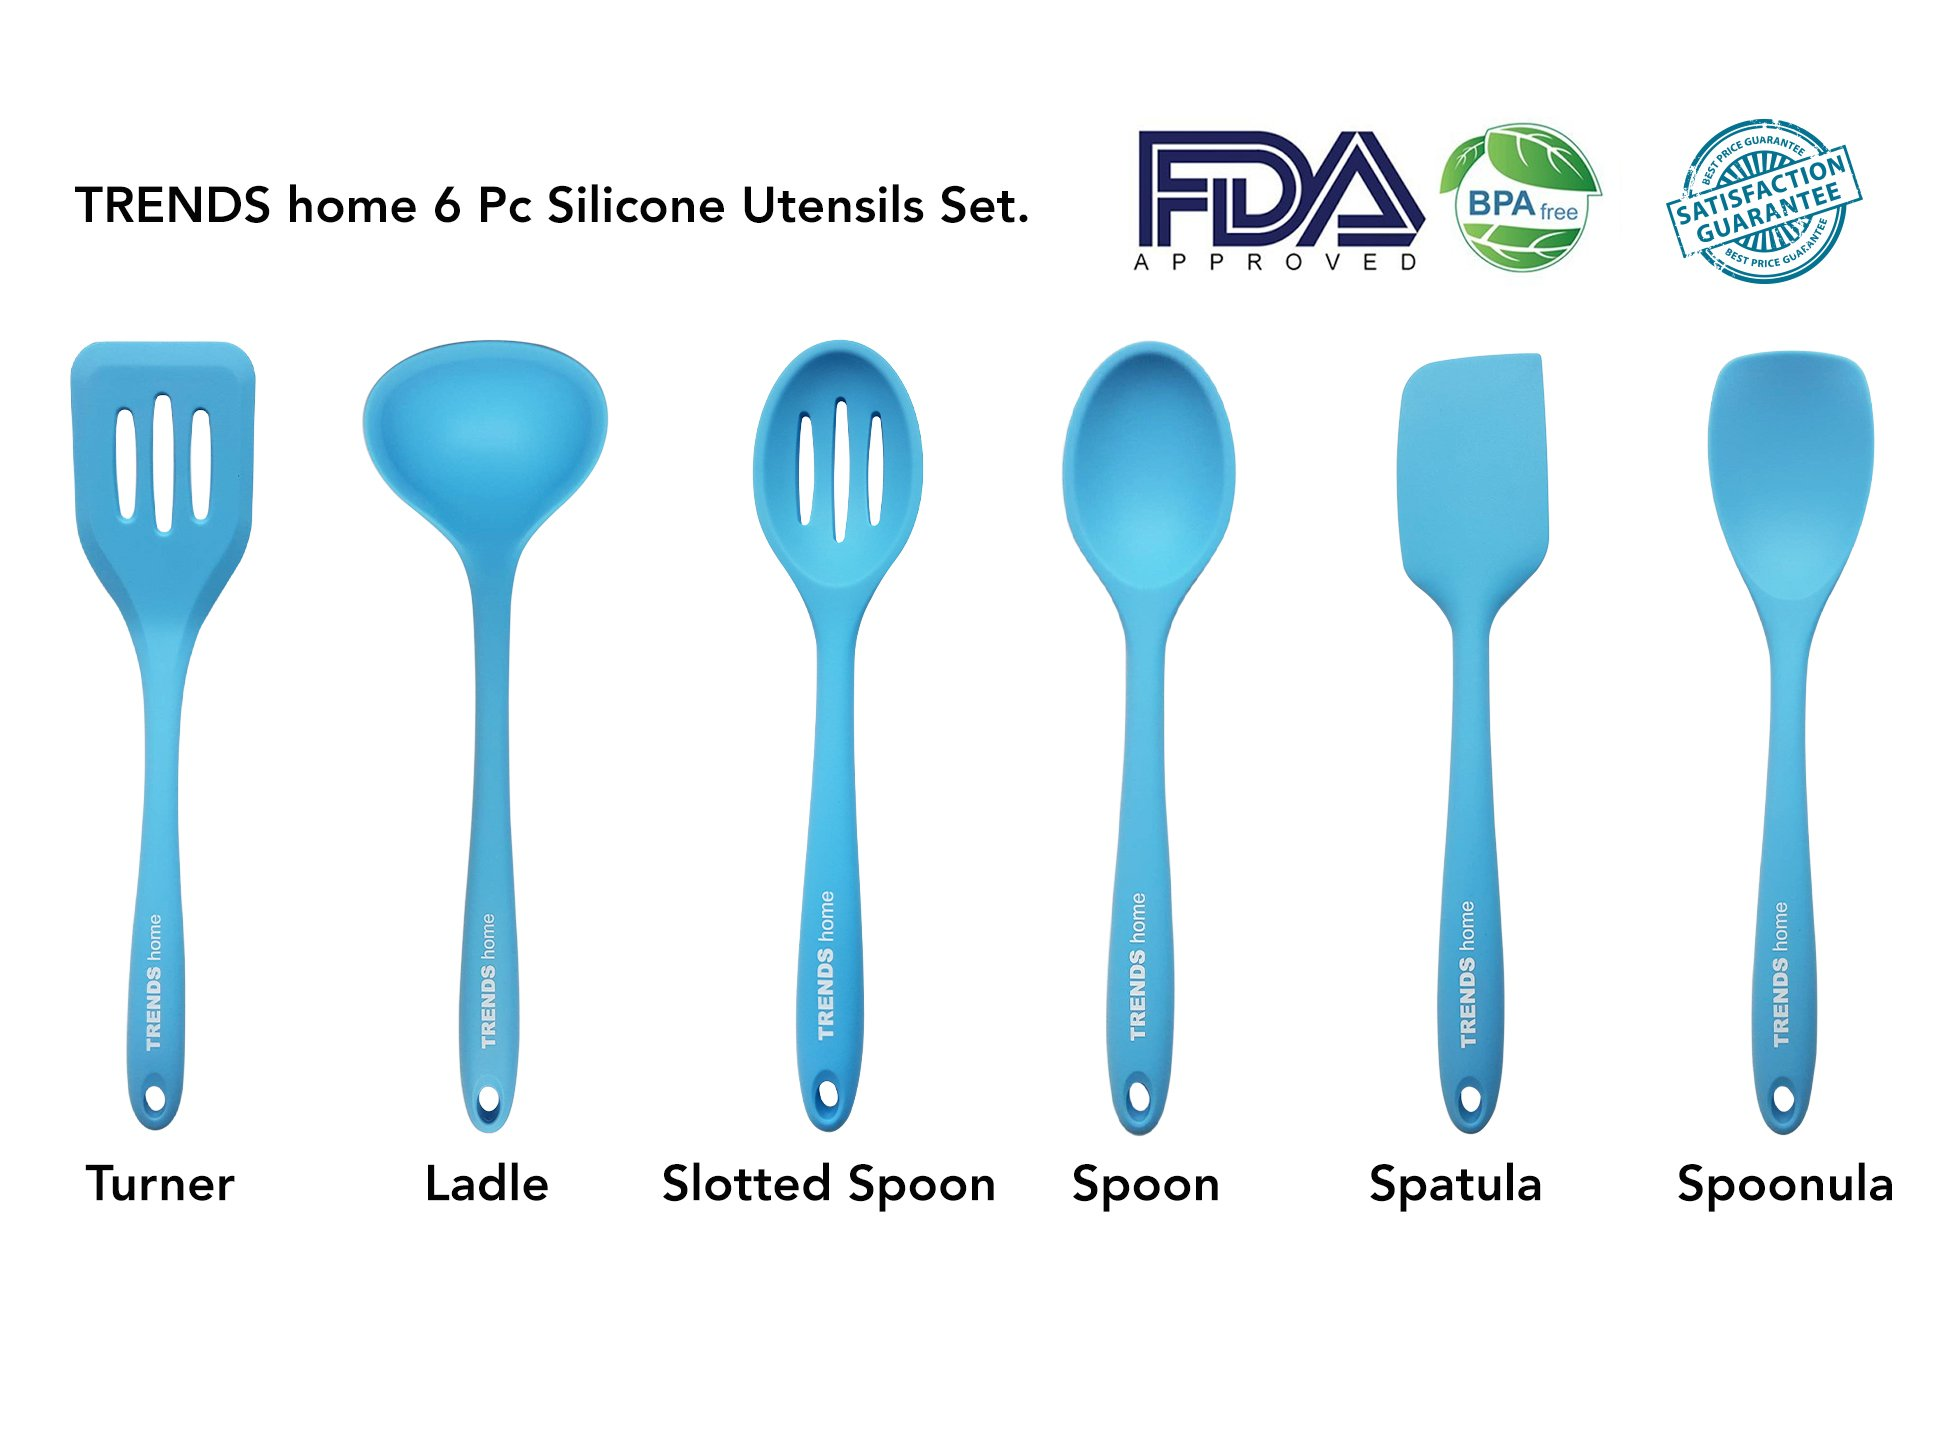 Genuine TRENDS home Premium Quality 6 Pc Heat Resistant, Non Stick Silicone Kitchen Utensils. Cooking Utensils including Spatula, Spoon, Turner, Ladle, Slotted Spoon, Spoonula